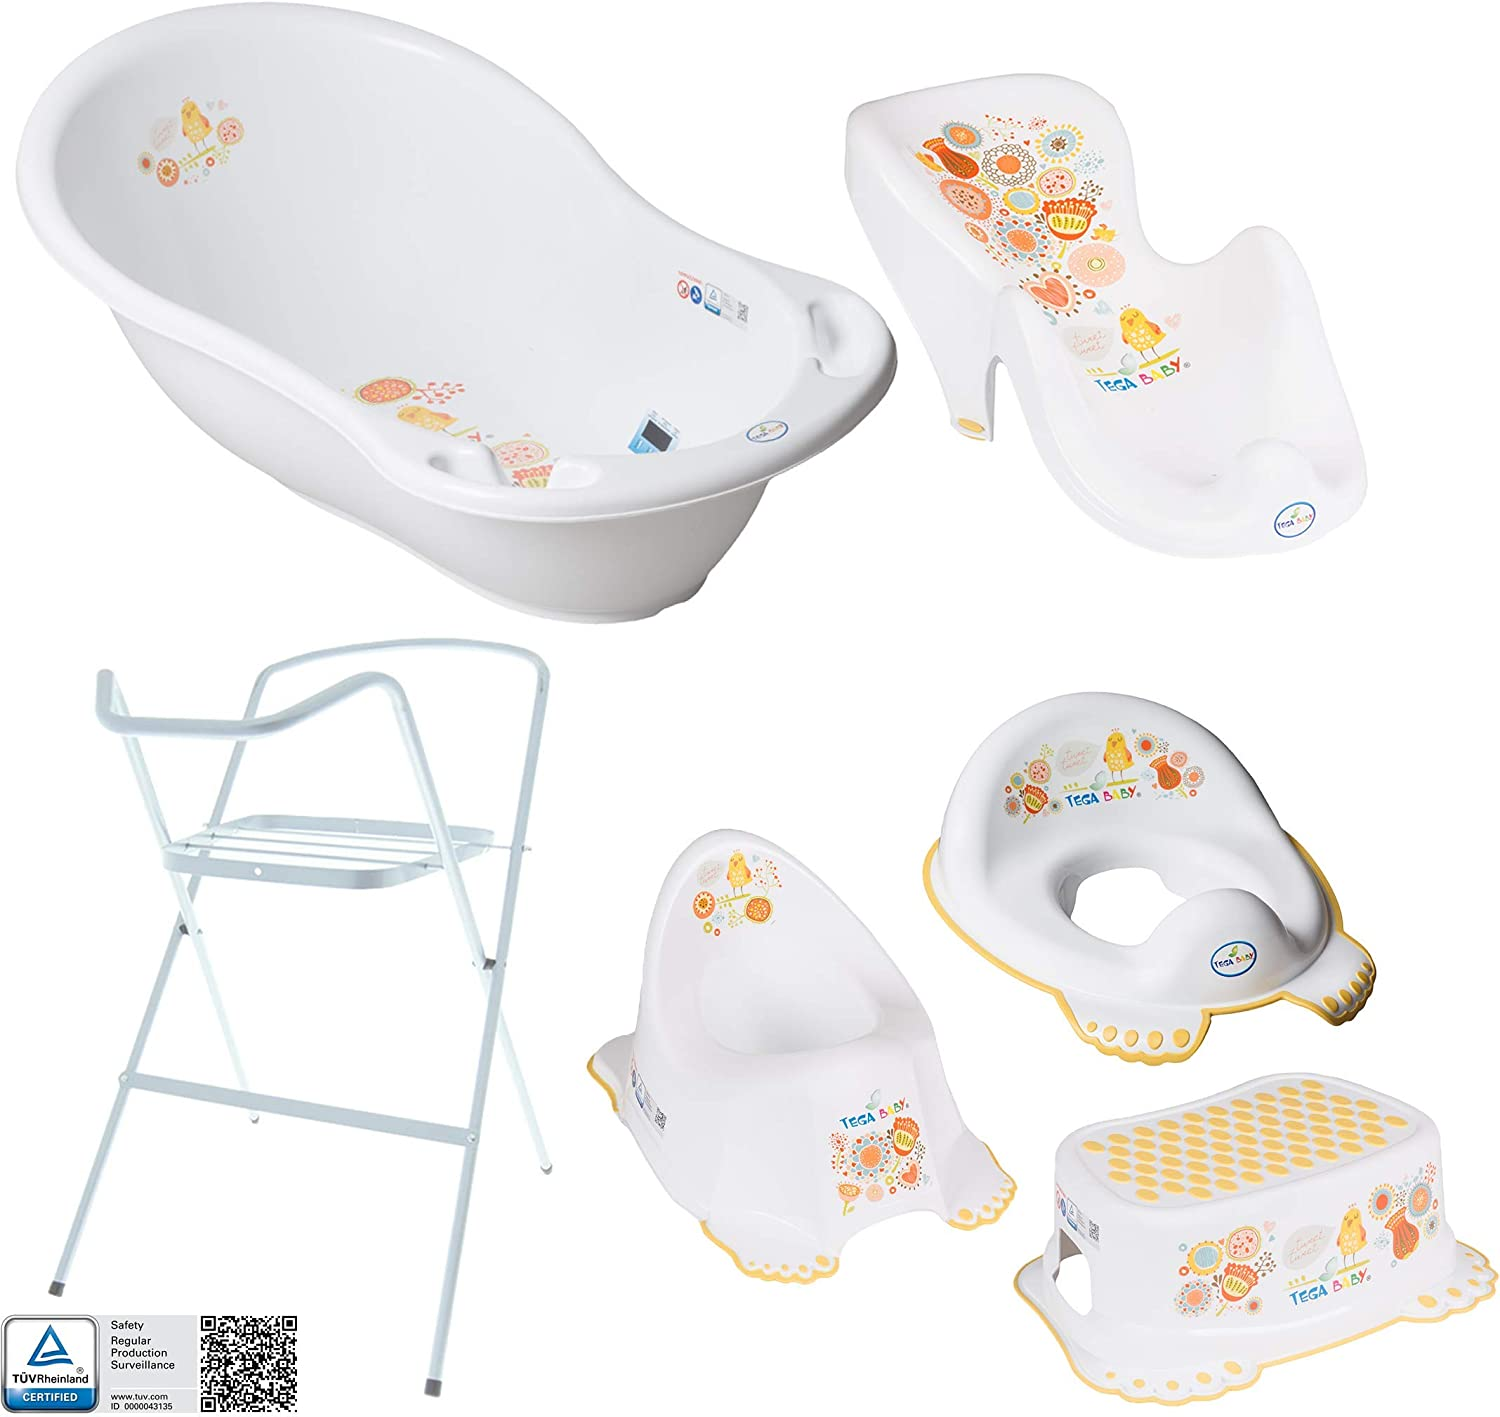 Stand Drain Bath seat Different Sets for Newborns with Baby bathtubs T/üv Rheinland Tested! Baby Bathtub with Frame and Bath seat